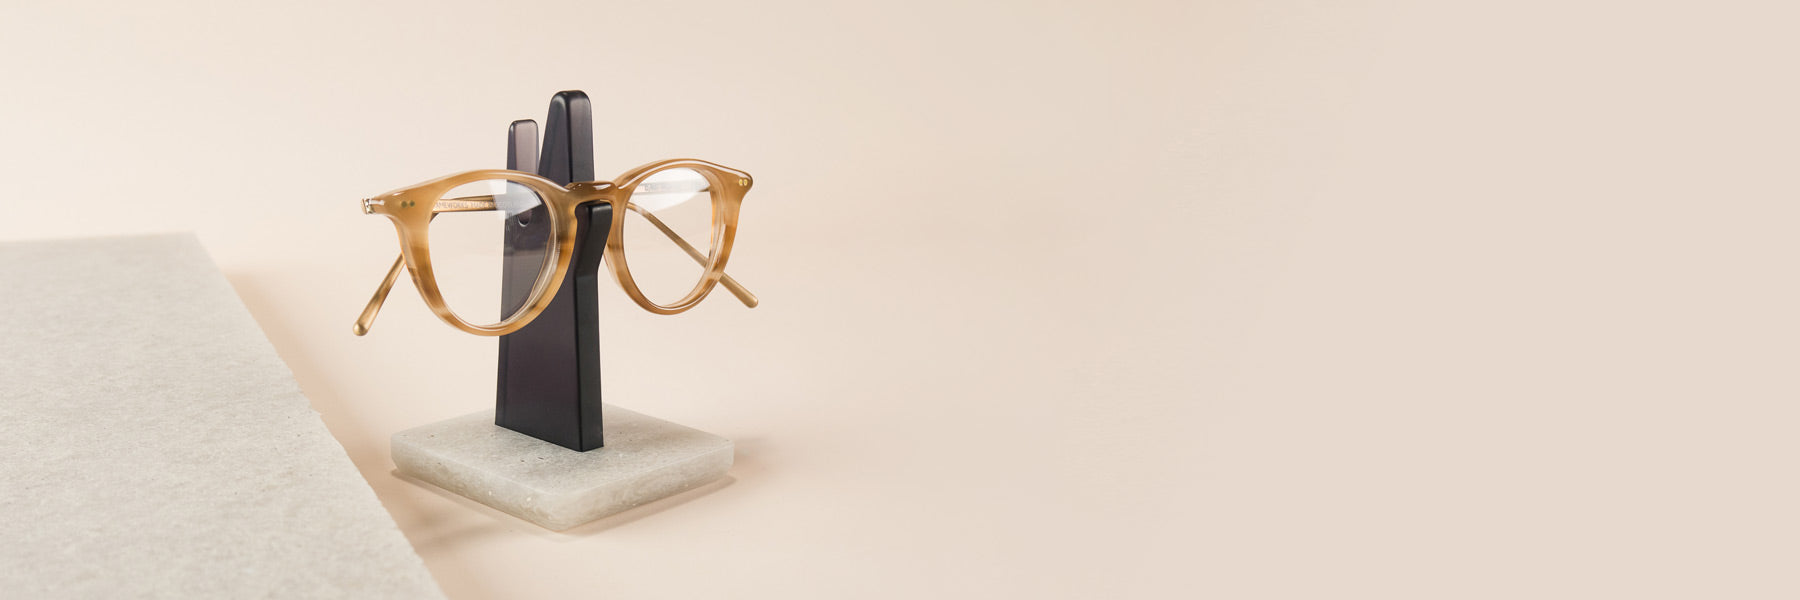 A minimal eyeglass holder